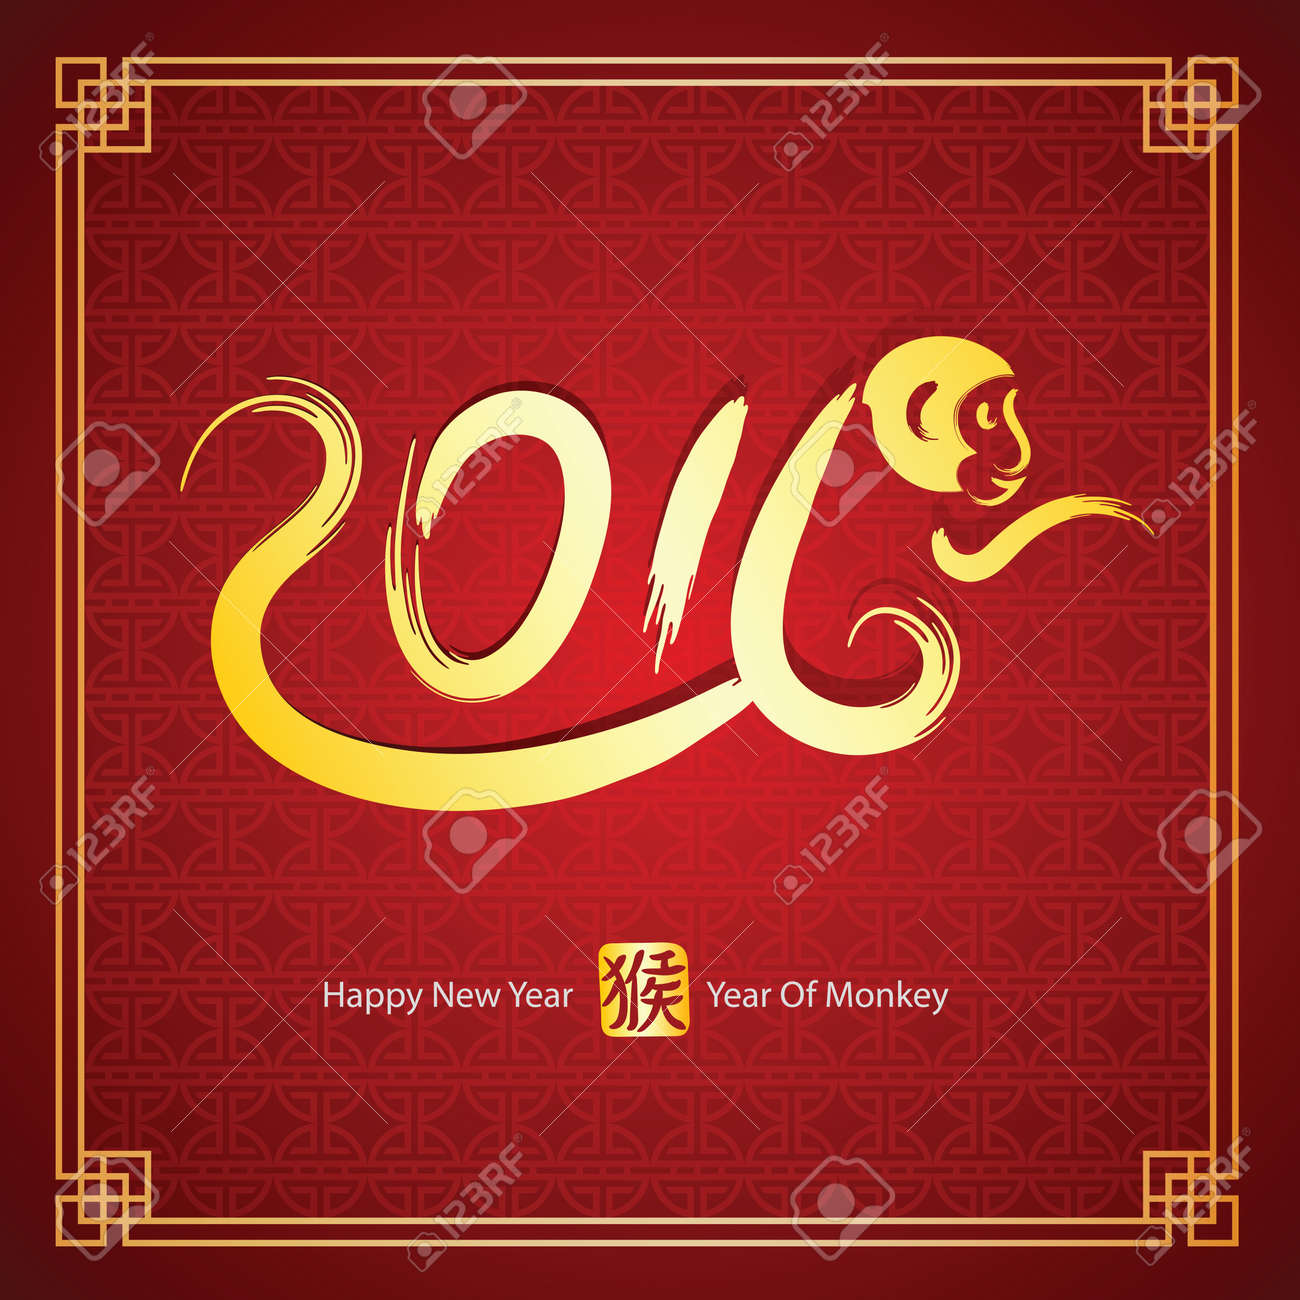 Chinese Calligraphy 2016 - Year of monkey ,vector illustration Stock Vector - 46186075